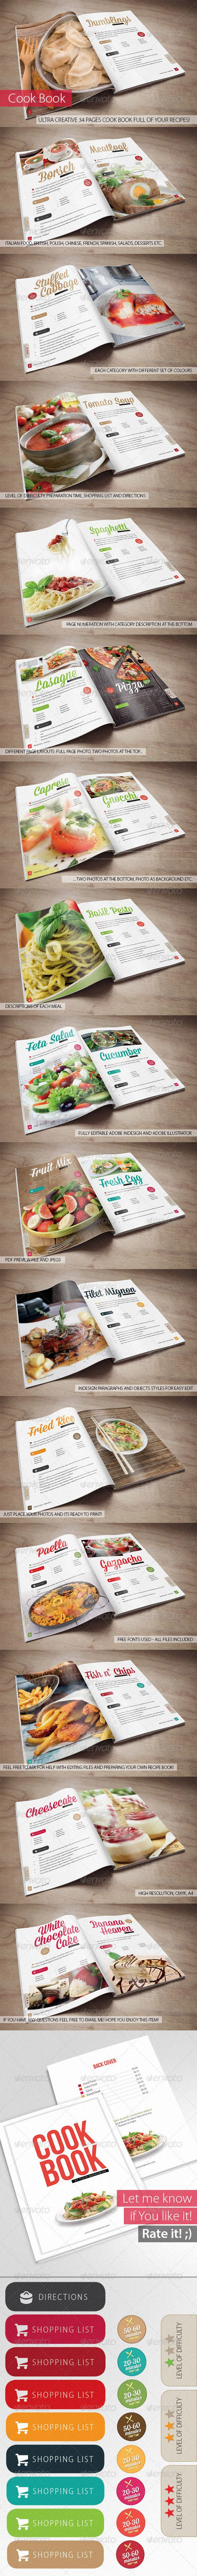 cook book your recipes book stuff dishes and creative